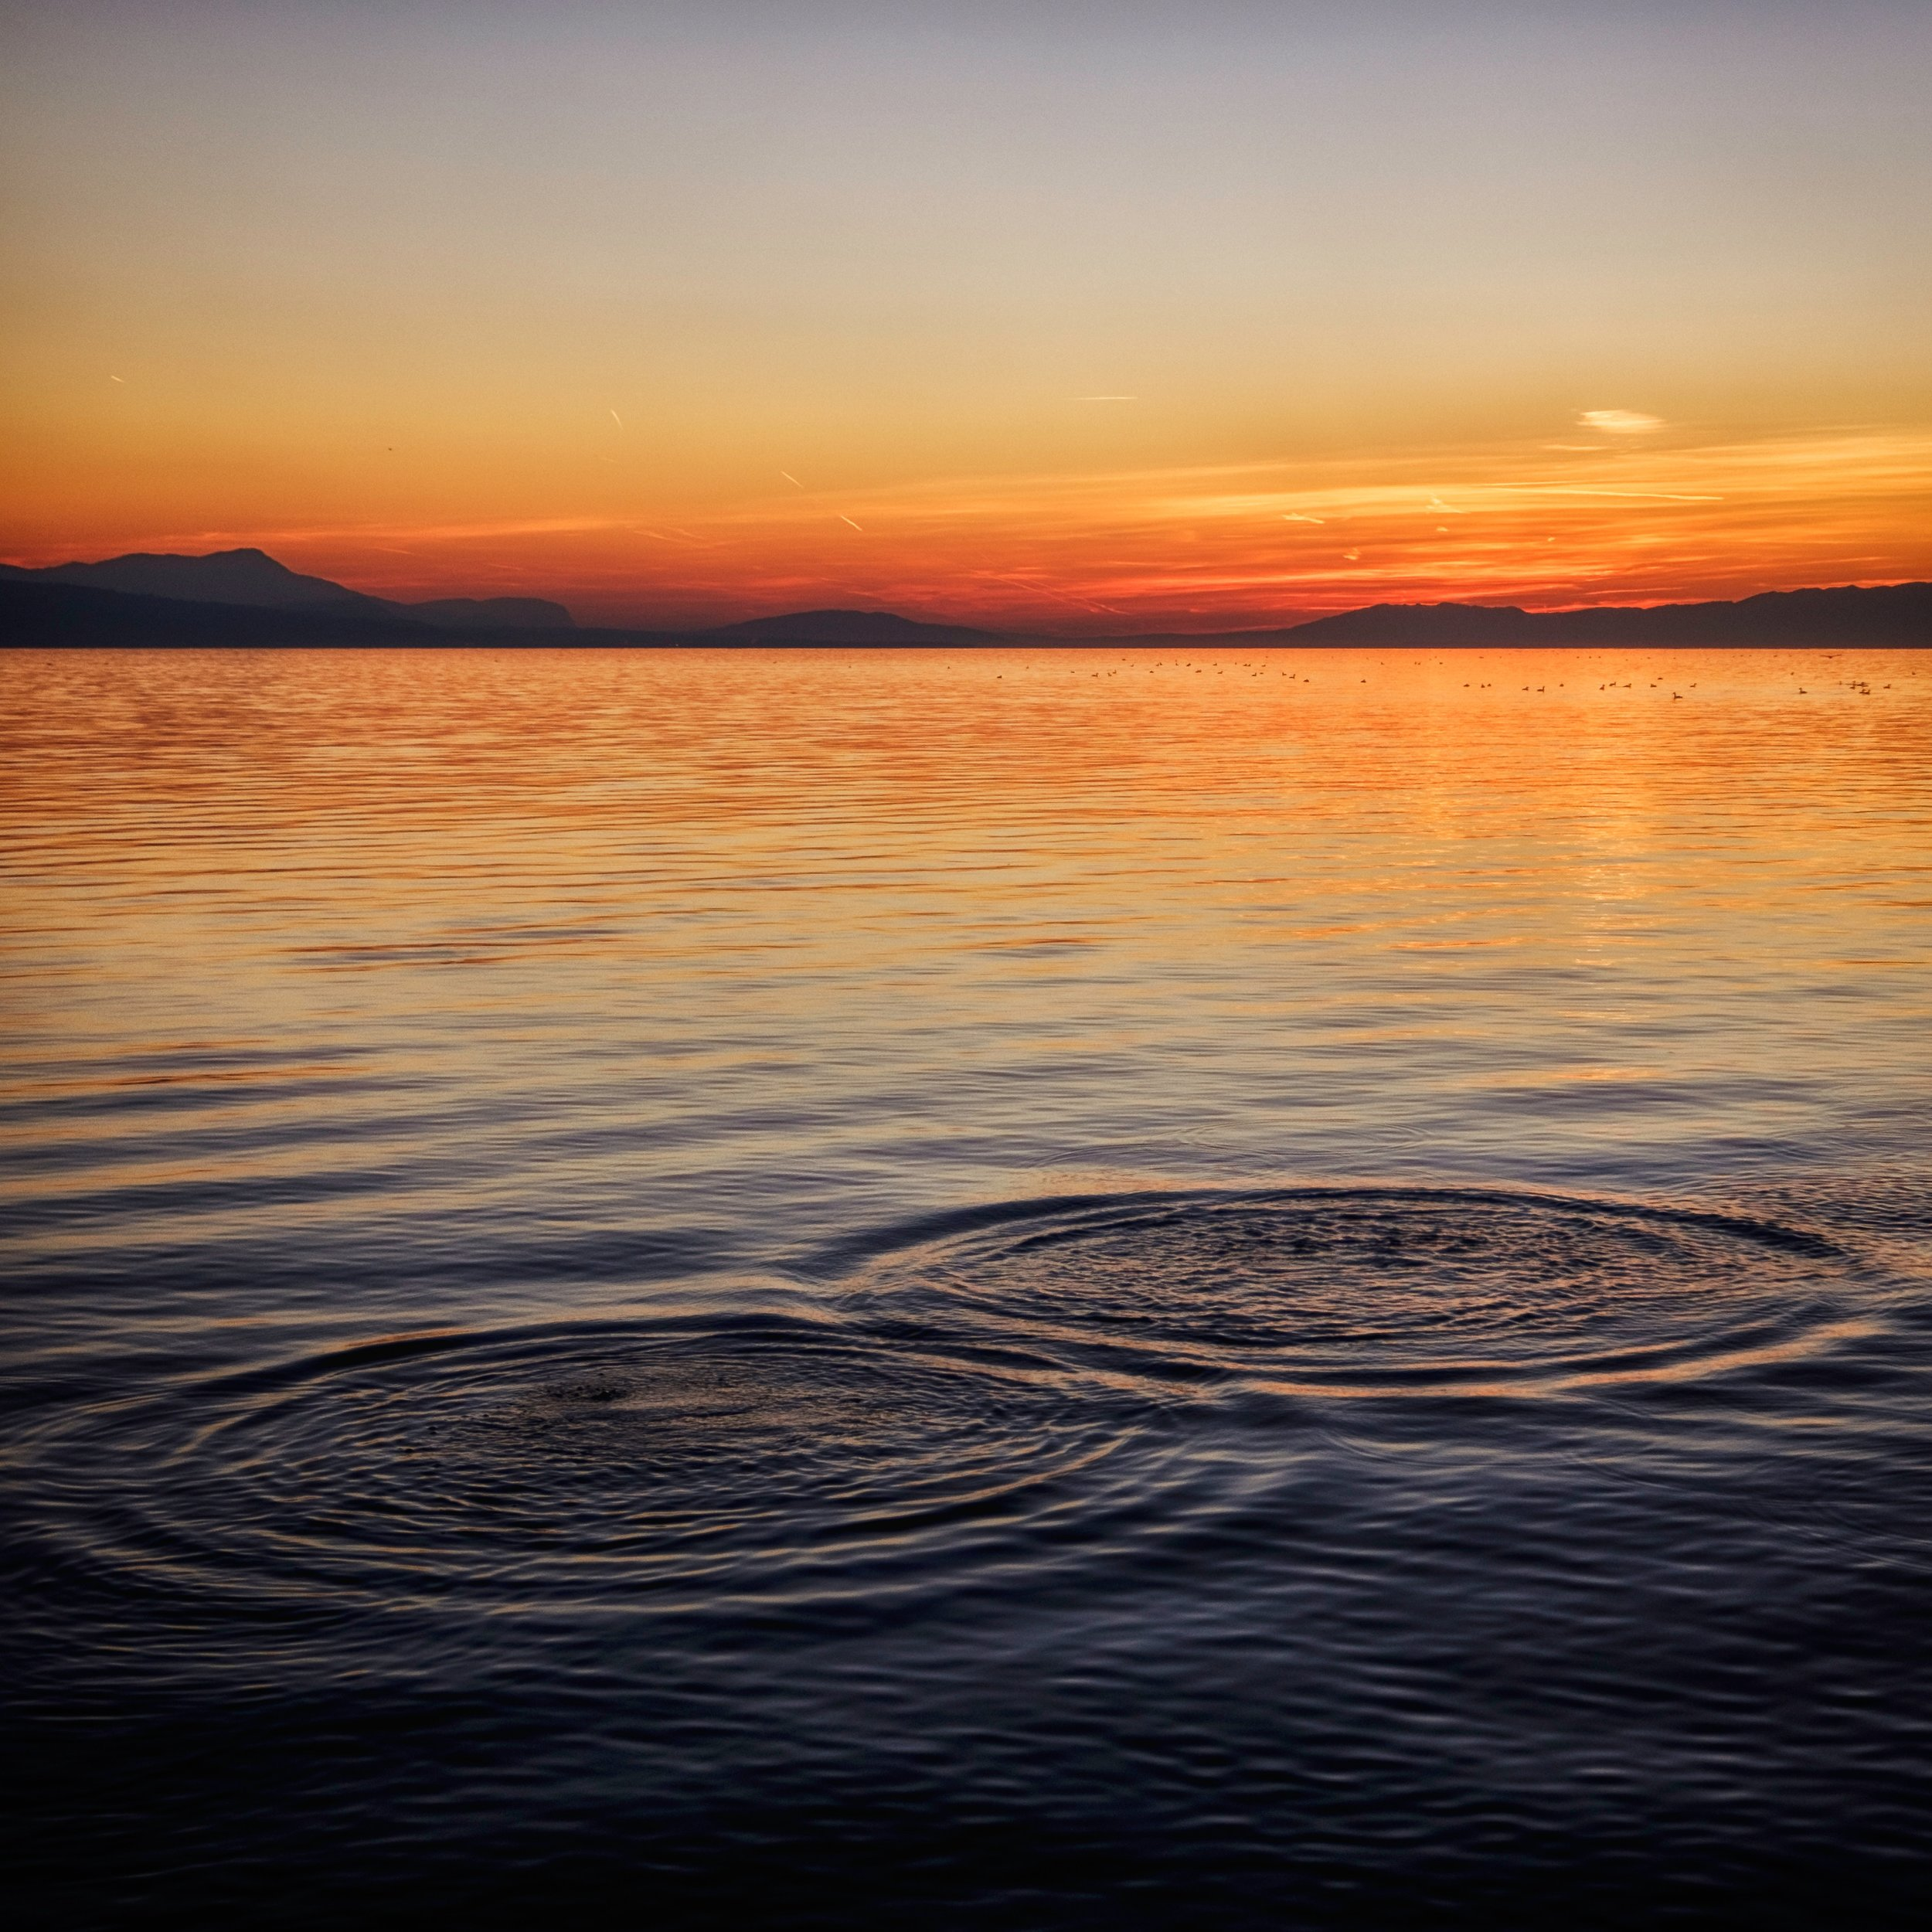 ripples on water sunset colors.jpg